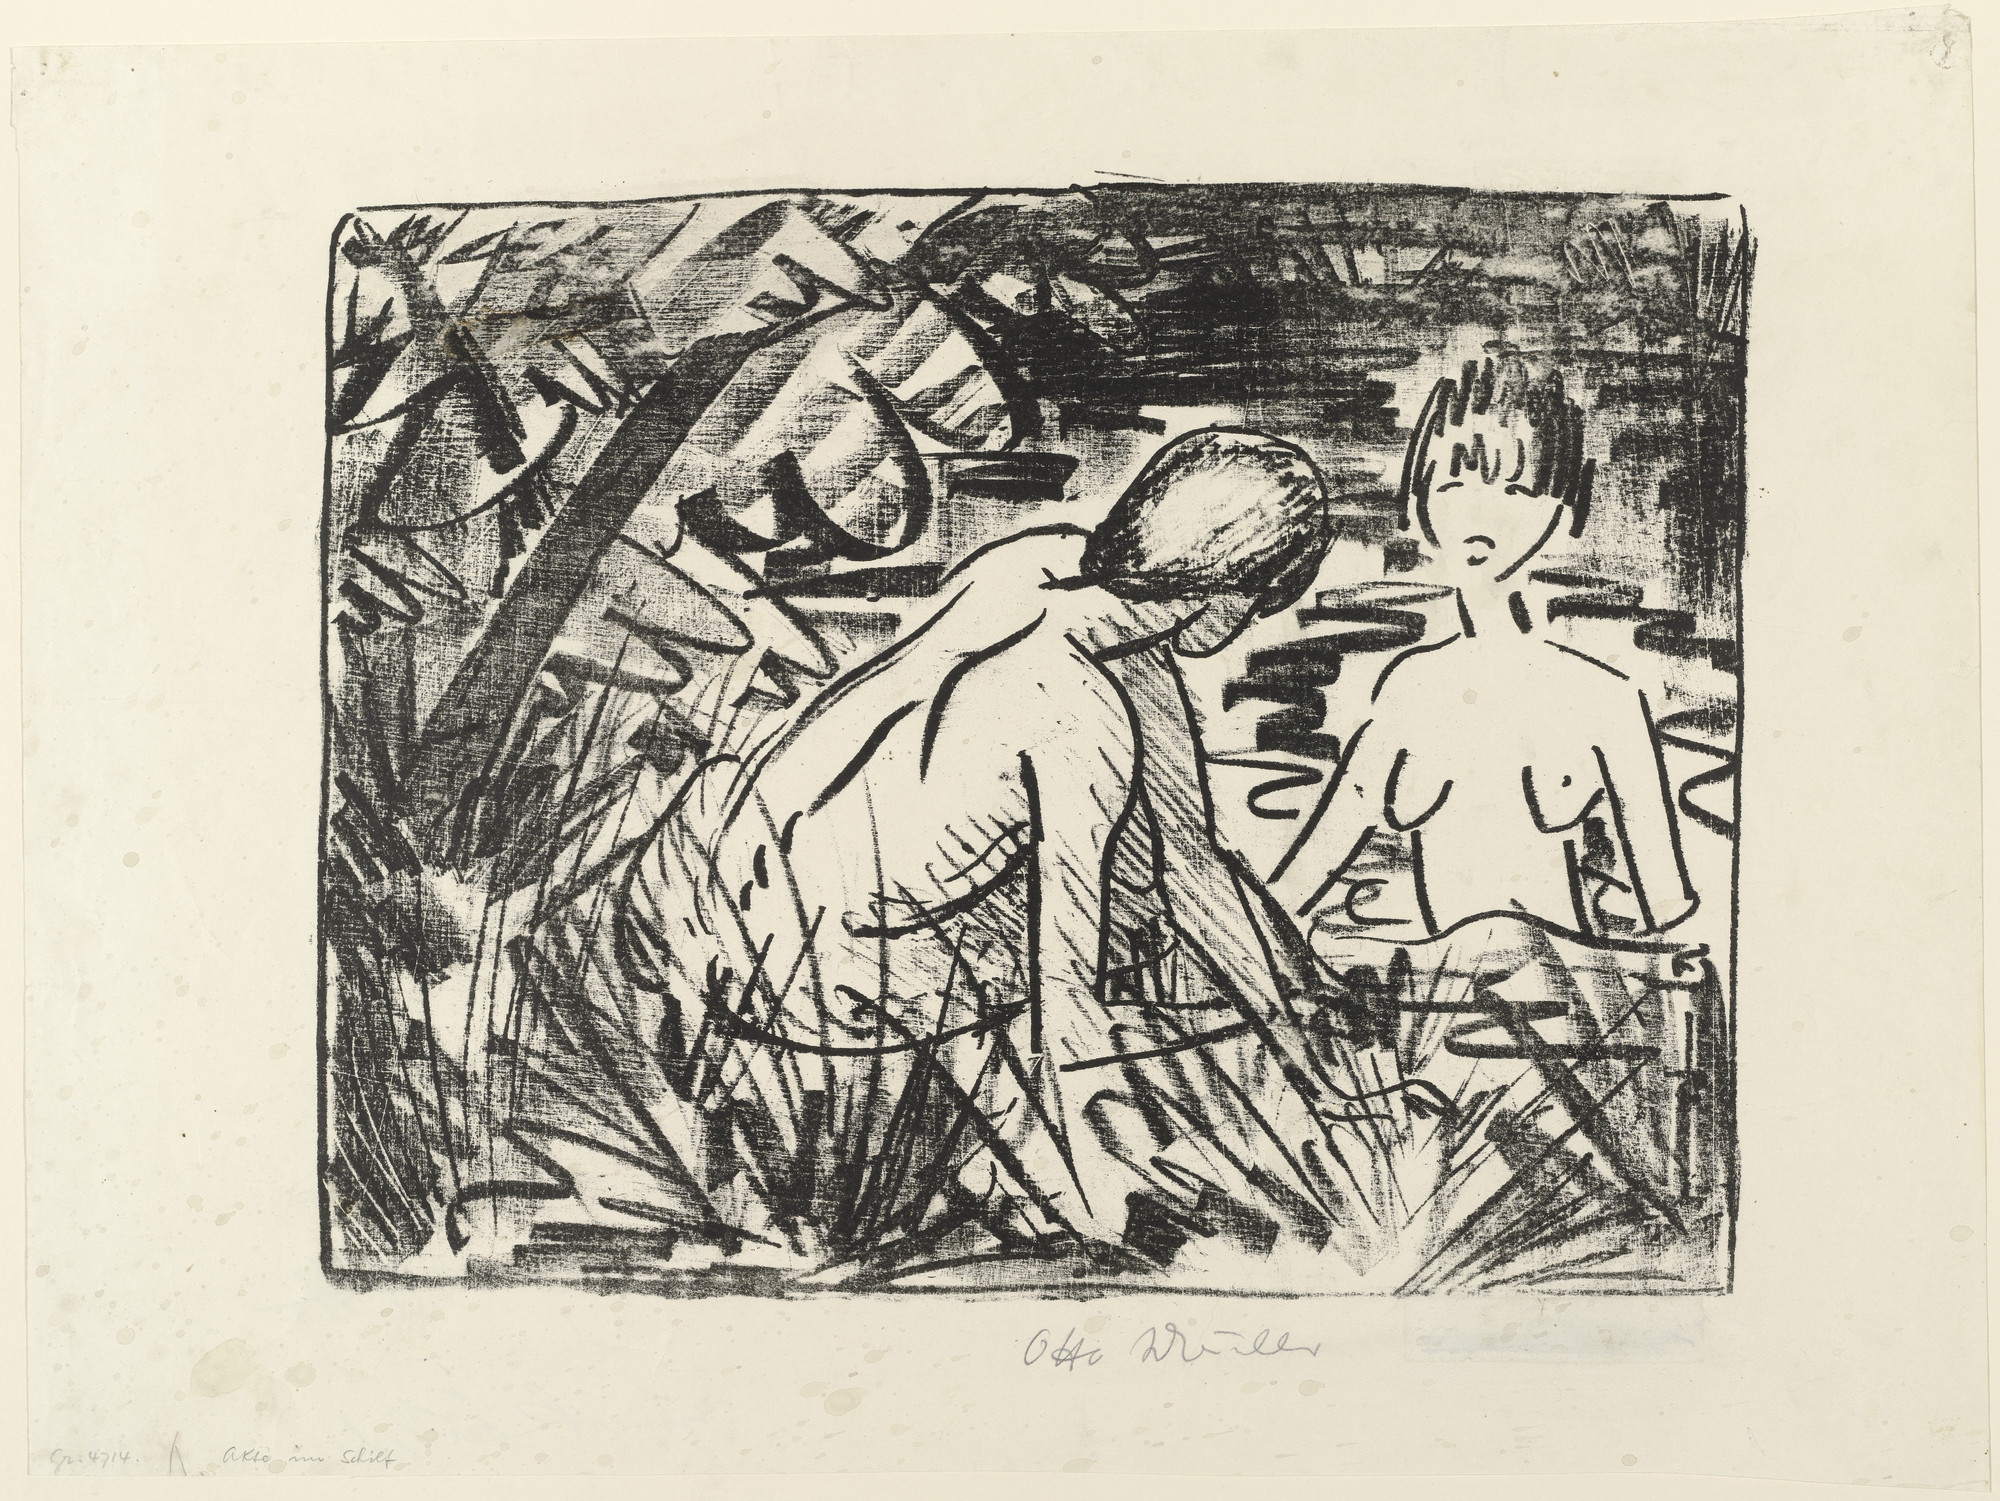 Otto Mueller. One Girl Bathing and the Other Sitting on the Shore (2) [Badendes und am Ufer sitzendes Mädchen (2)]. (c. 1919)